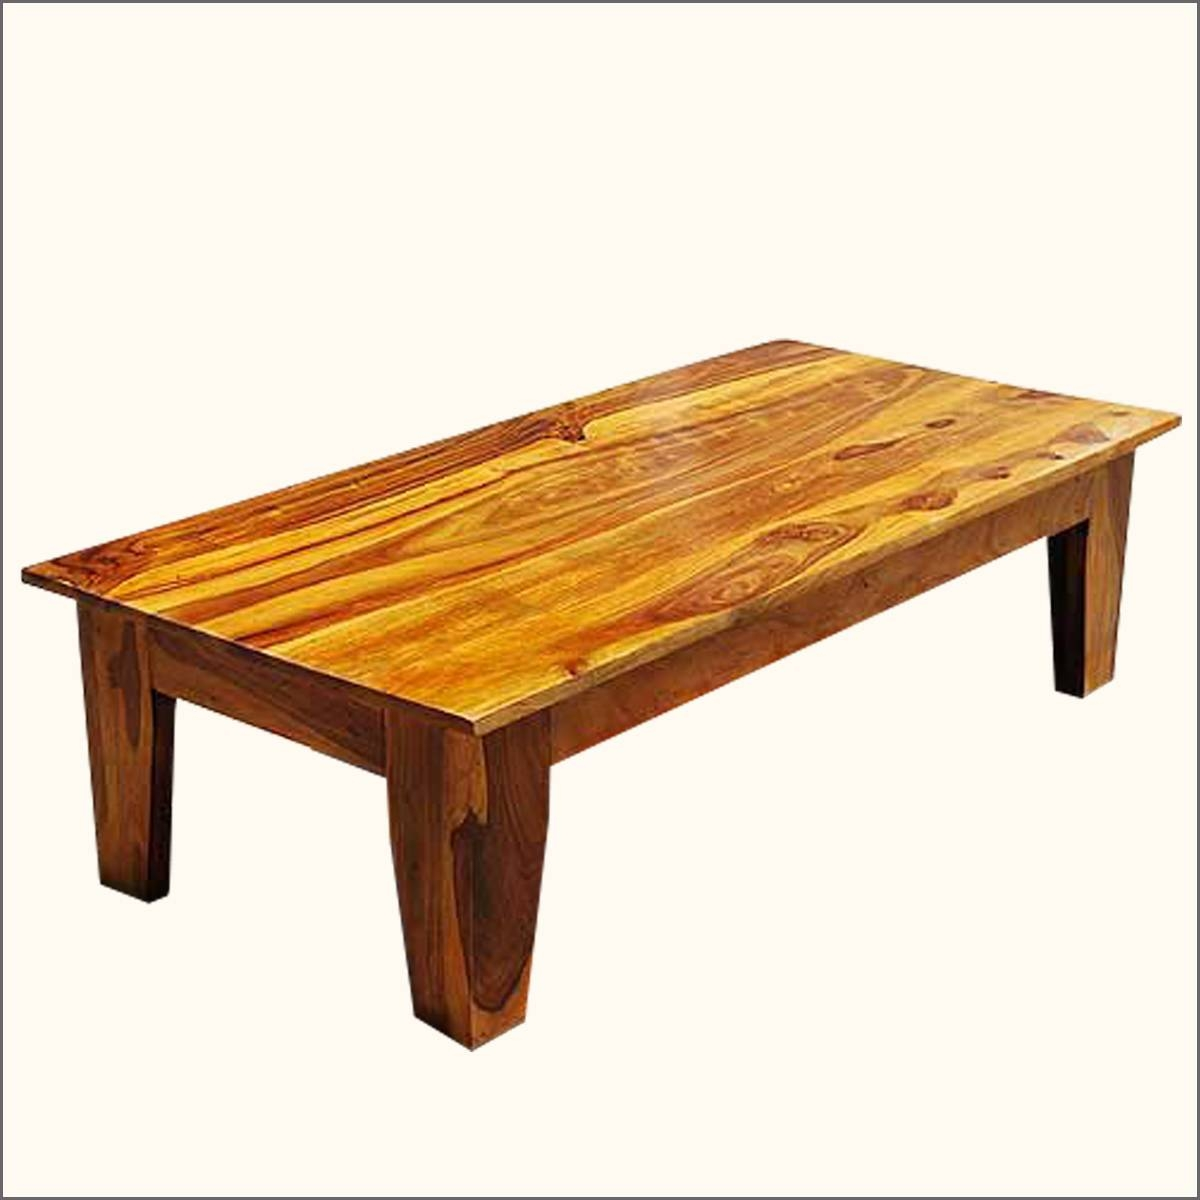 A Laid Back Look With Low Height Coffee Table   Coffe Table Gallery Pertaining To Low Height Coffee Tables (View 6 of 30)